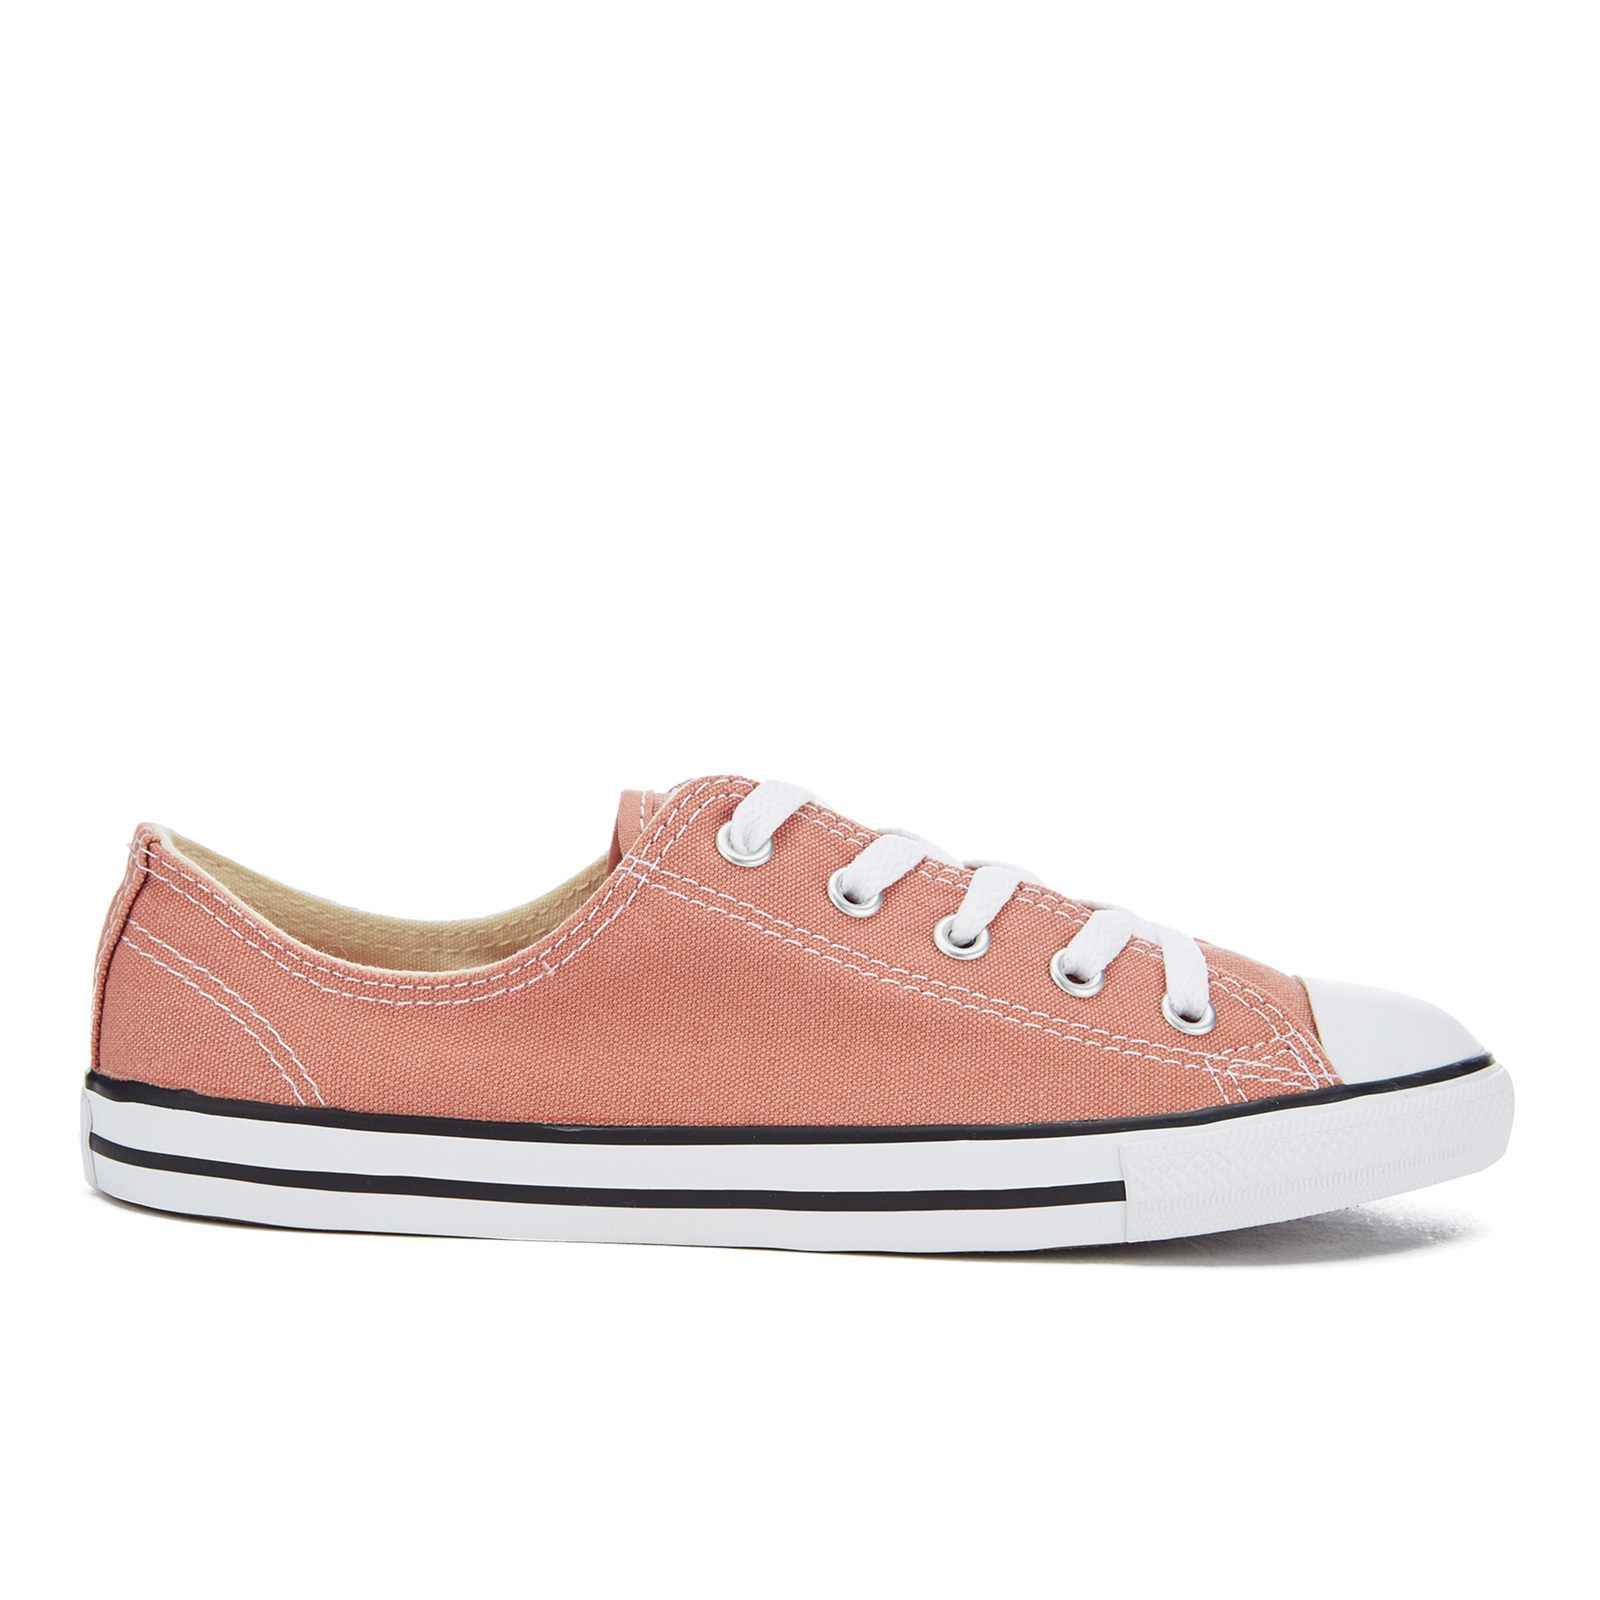 f6fedf442a32 ... Converse Women s Chuck Taylor All Star Dainty Ox Trainers - Pink Blush  Black White